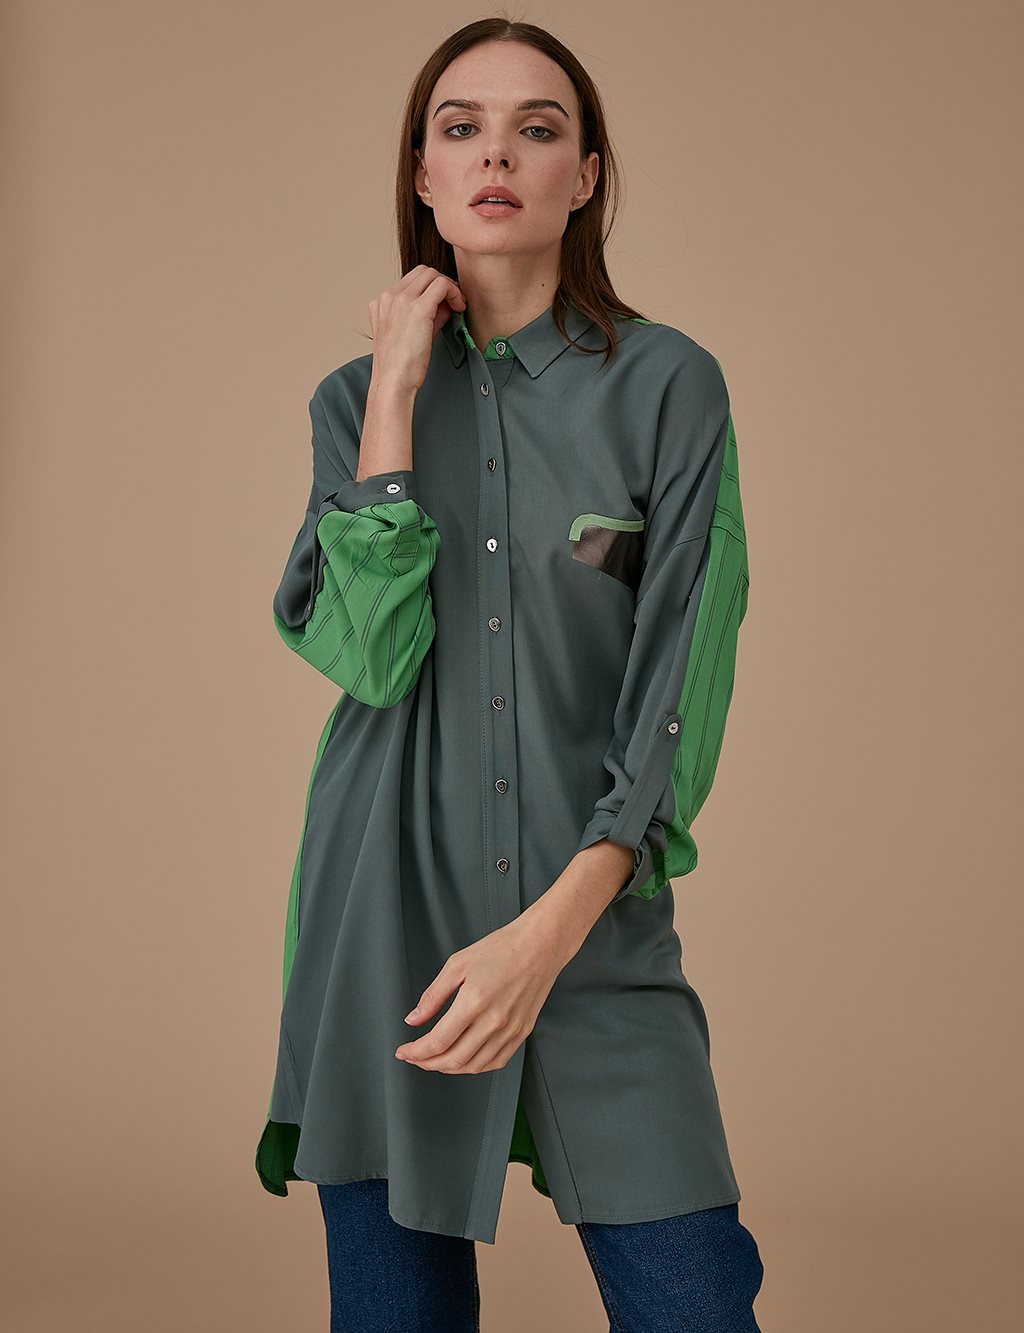 Colorful Oversize Tunic A9 21193 Green